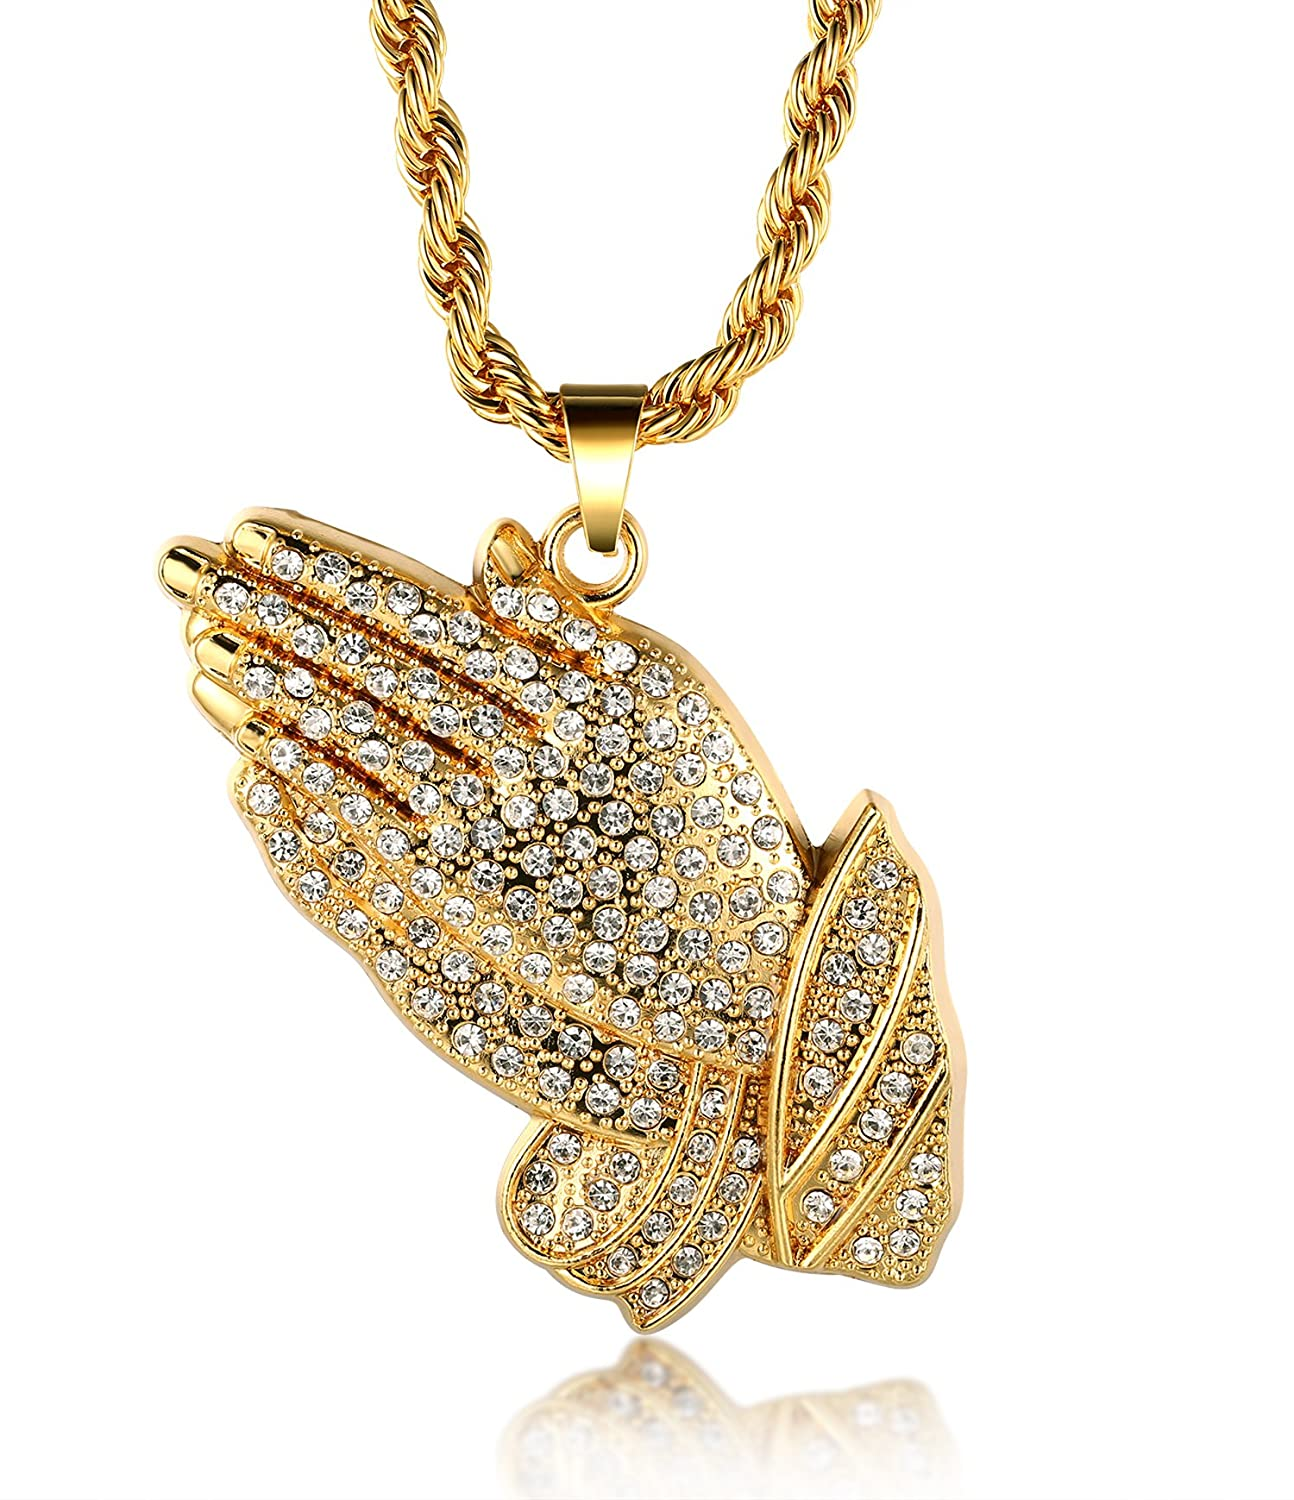 goldplated necklace gold baublebar g pendant everyday fine metro plated